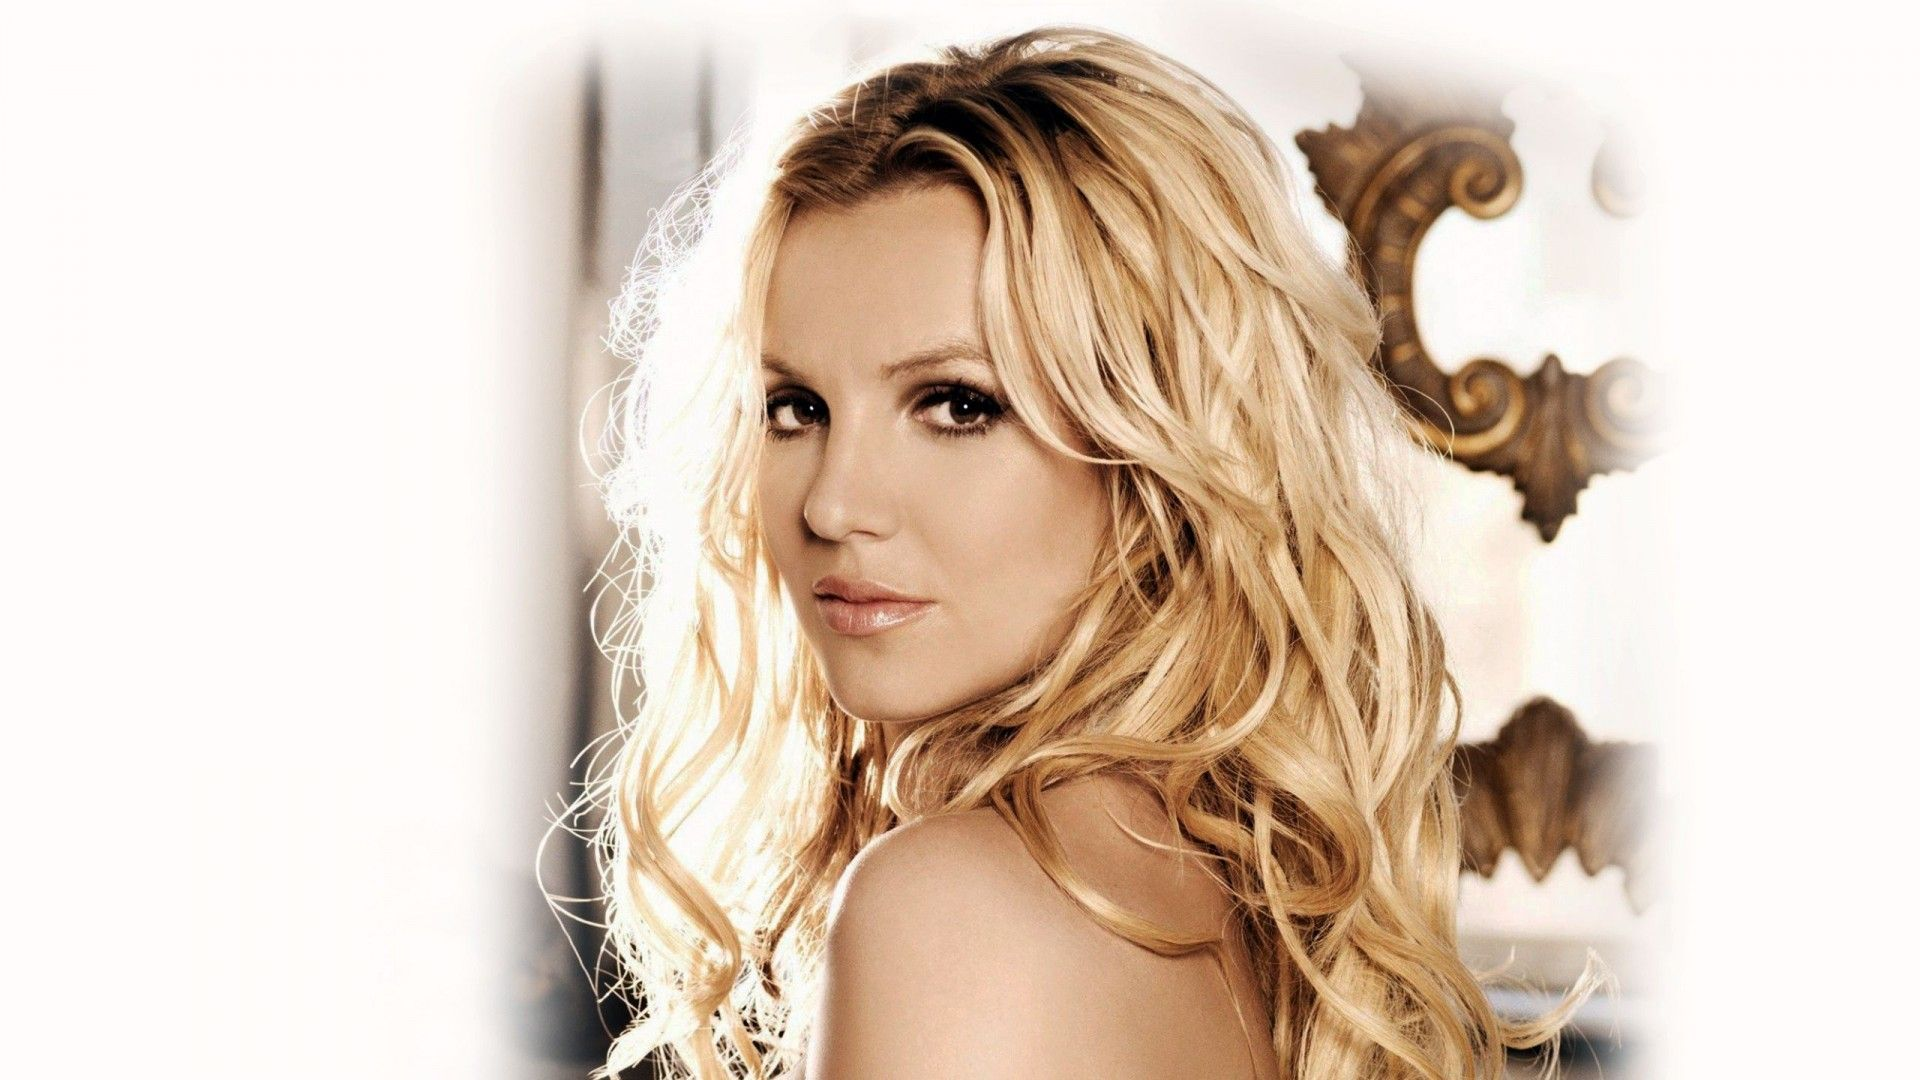 britney spears hd wallpapers collection - photo #10